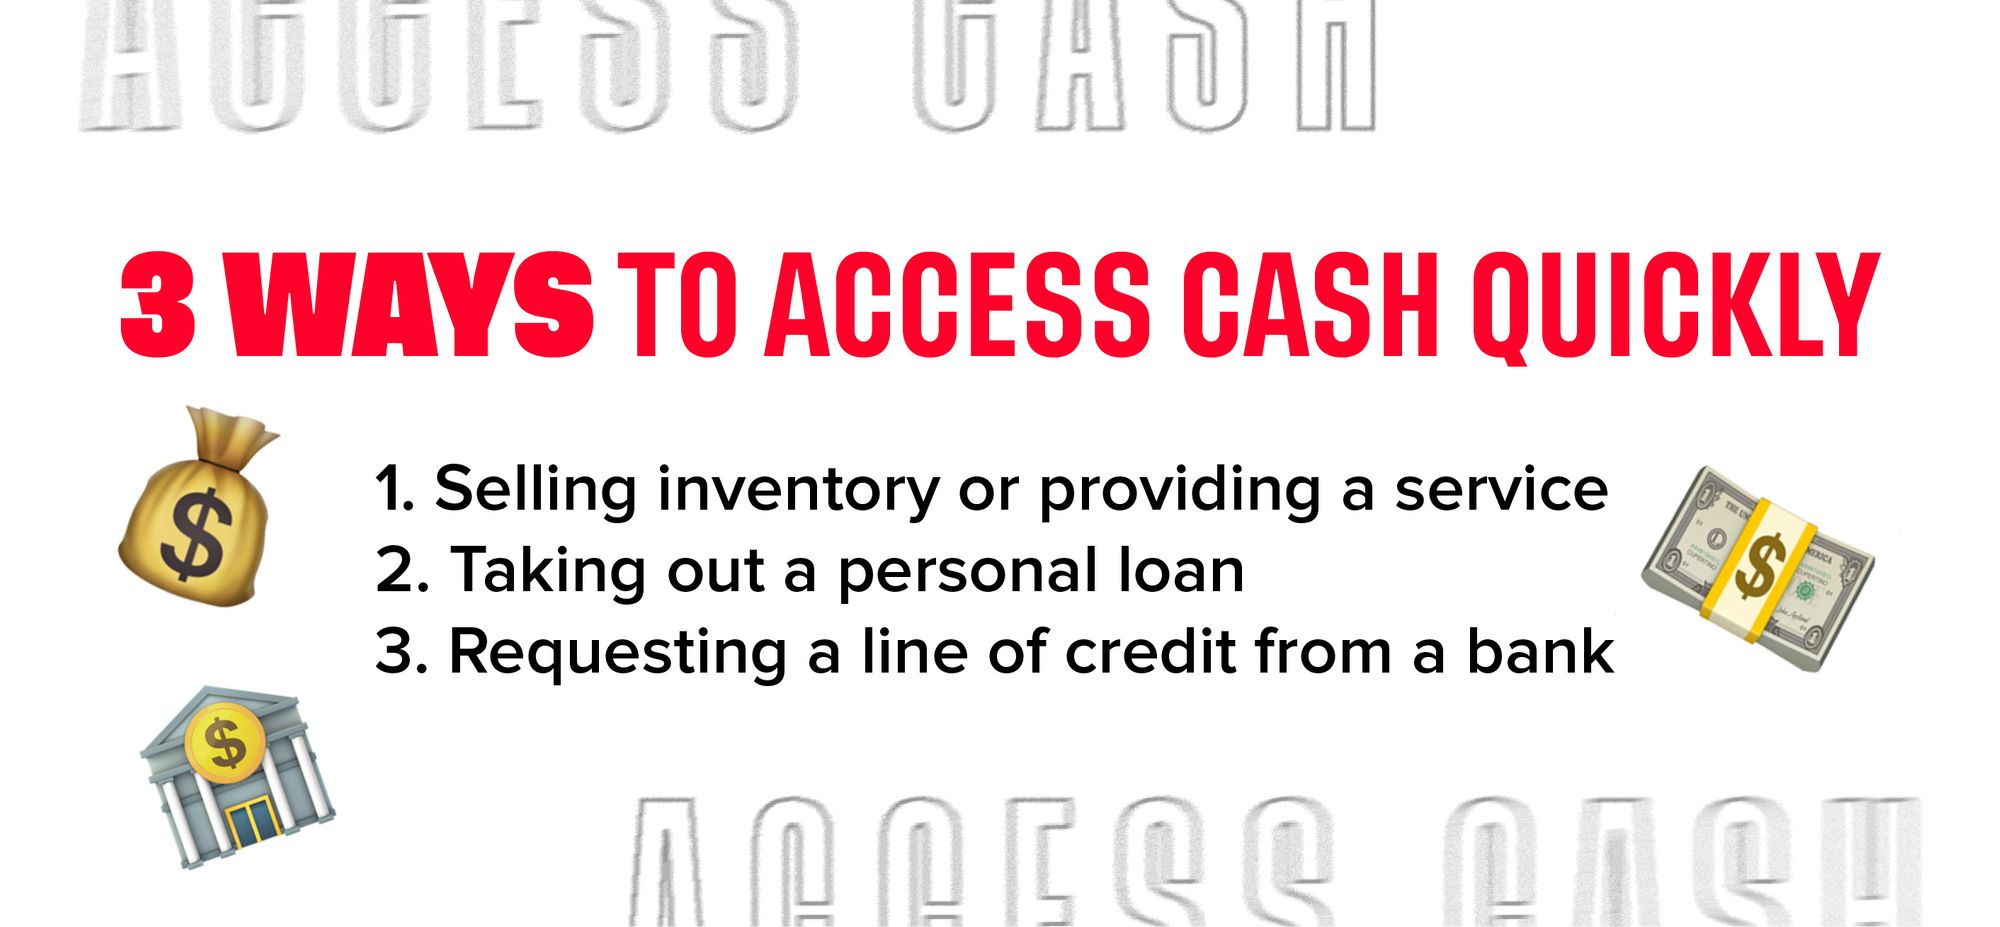 3 ways to access cash quickly: 1. Selling inventory or providing a service. 2. Taking out a personal loan. 3. Requesting a line of credit from a bank